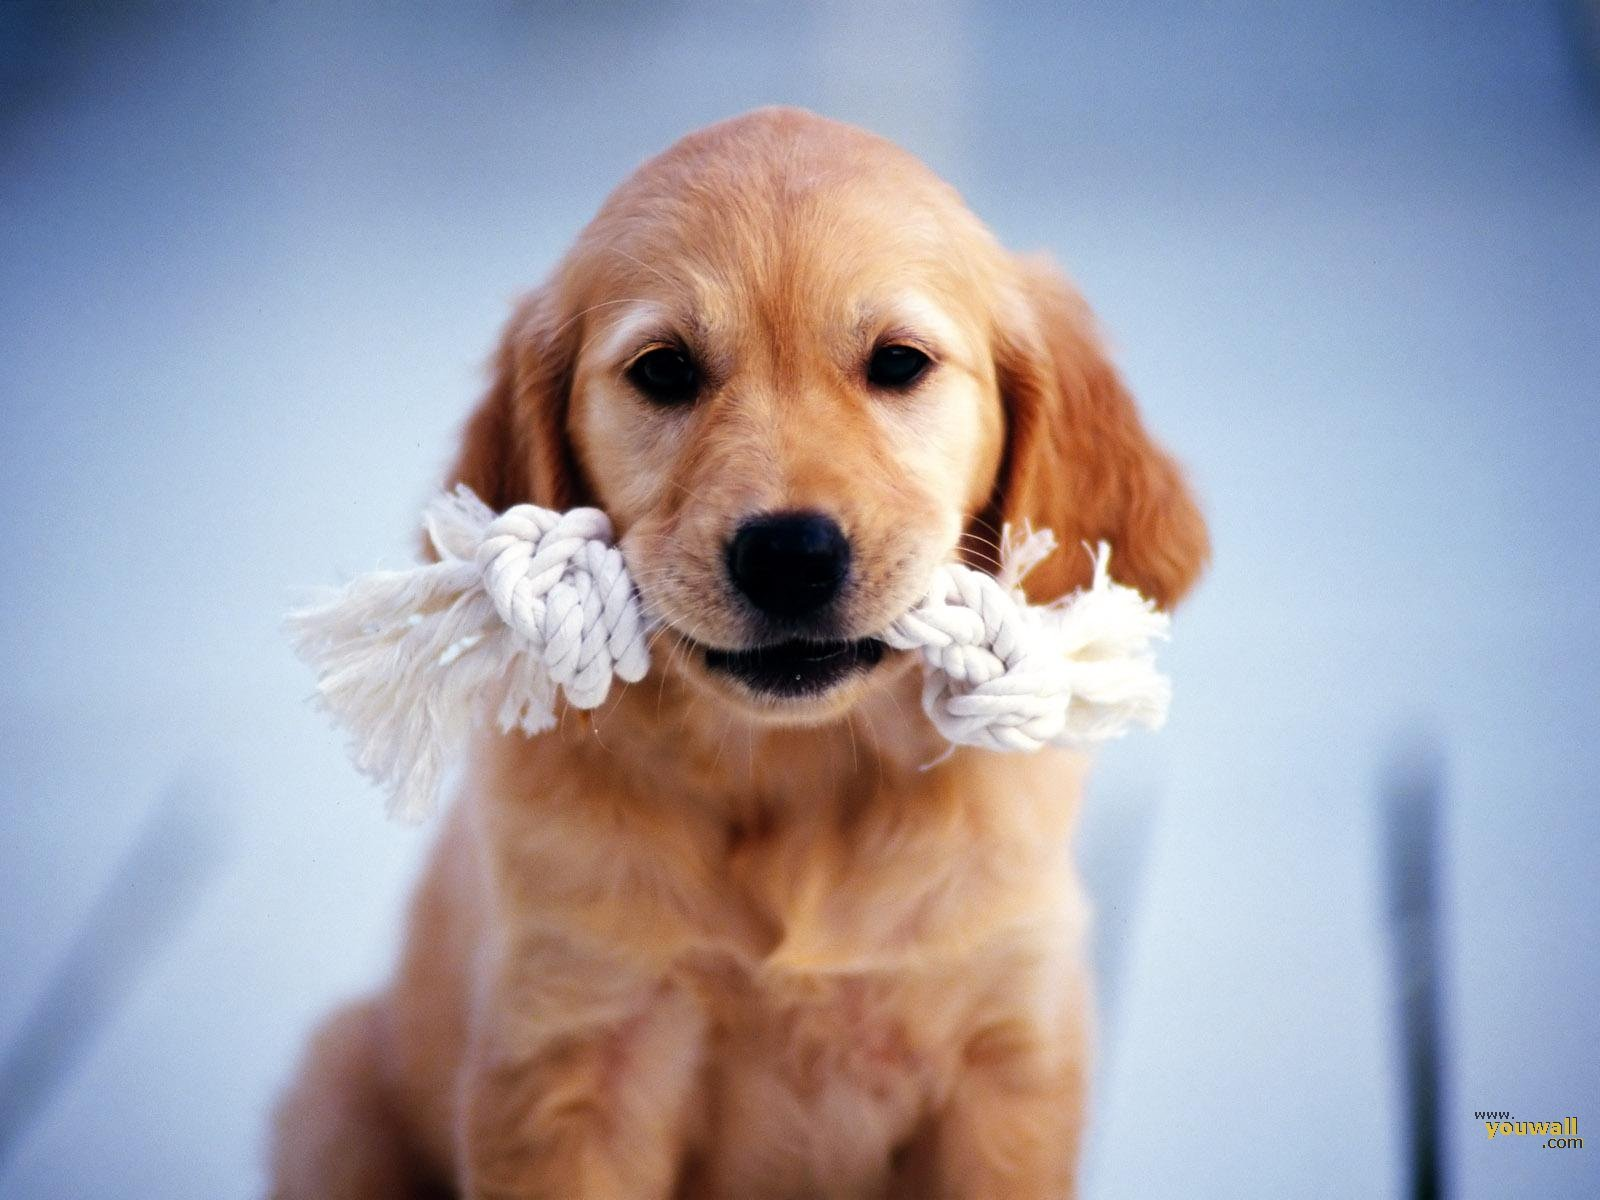 download All Wallpapers Beautiful Dog Hd Wallpapers 1600x1200